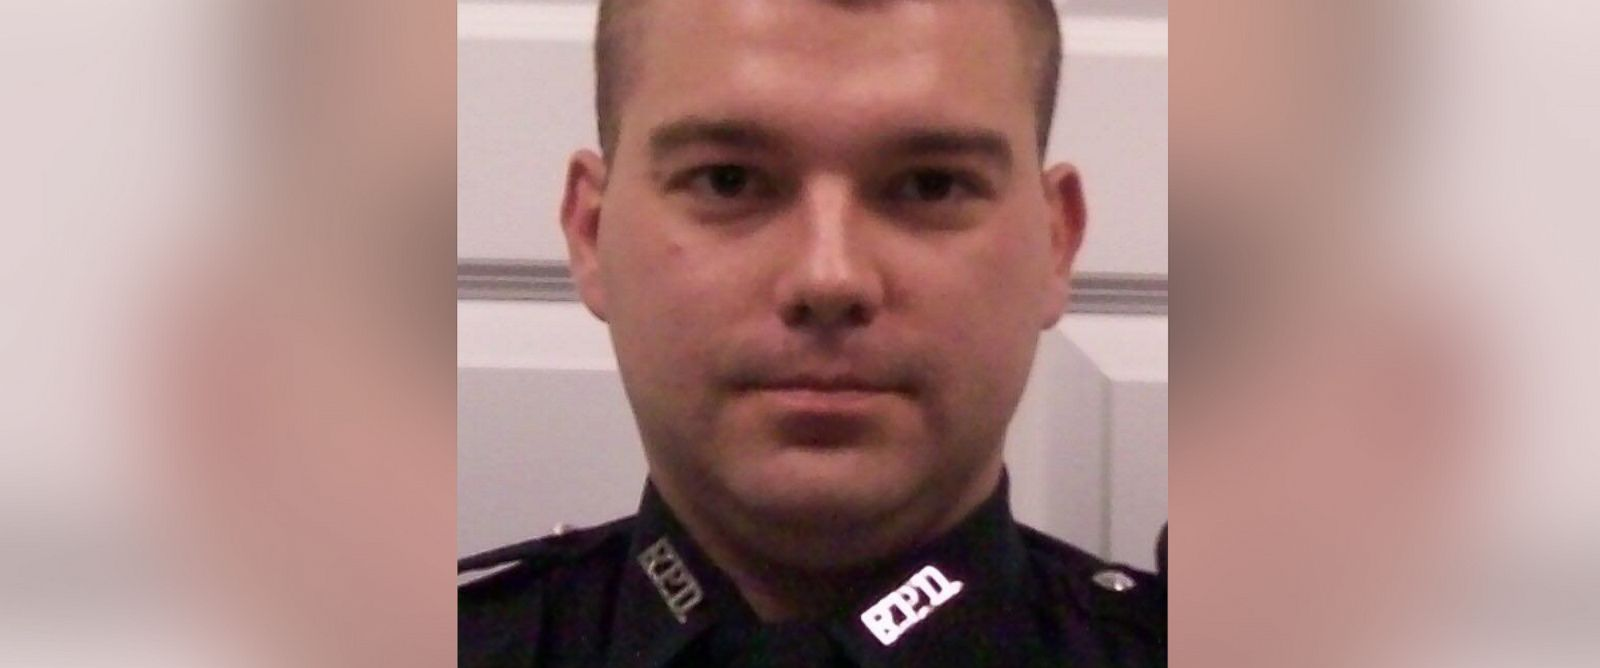 PHOTO: Richmond, KY Police Officer Daniel Ellis has died in hospital after being shot in the head on Wednesday while he was pursuing a suspect.